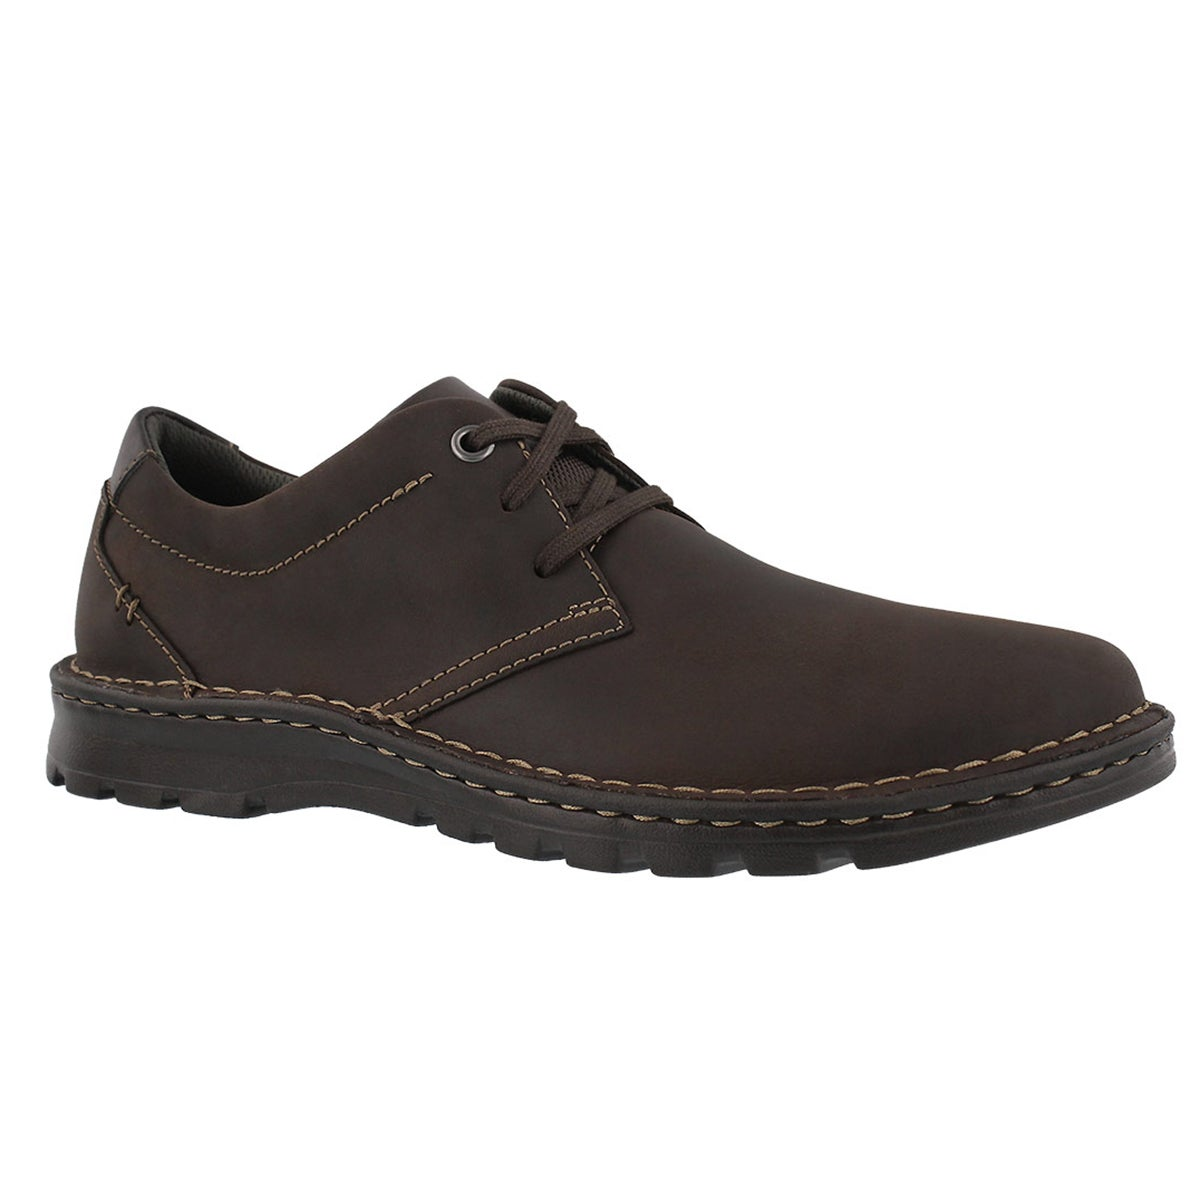 Men's VANEK PLAIN dark brown casual oxfords